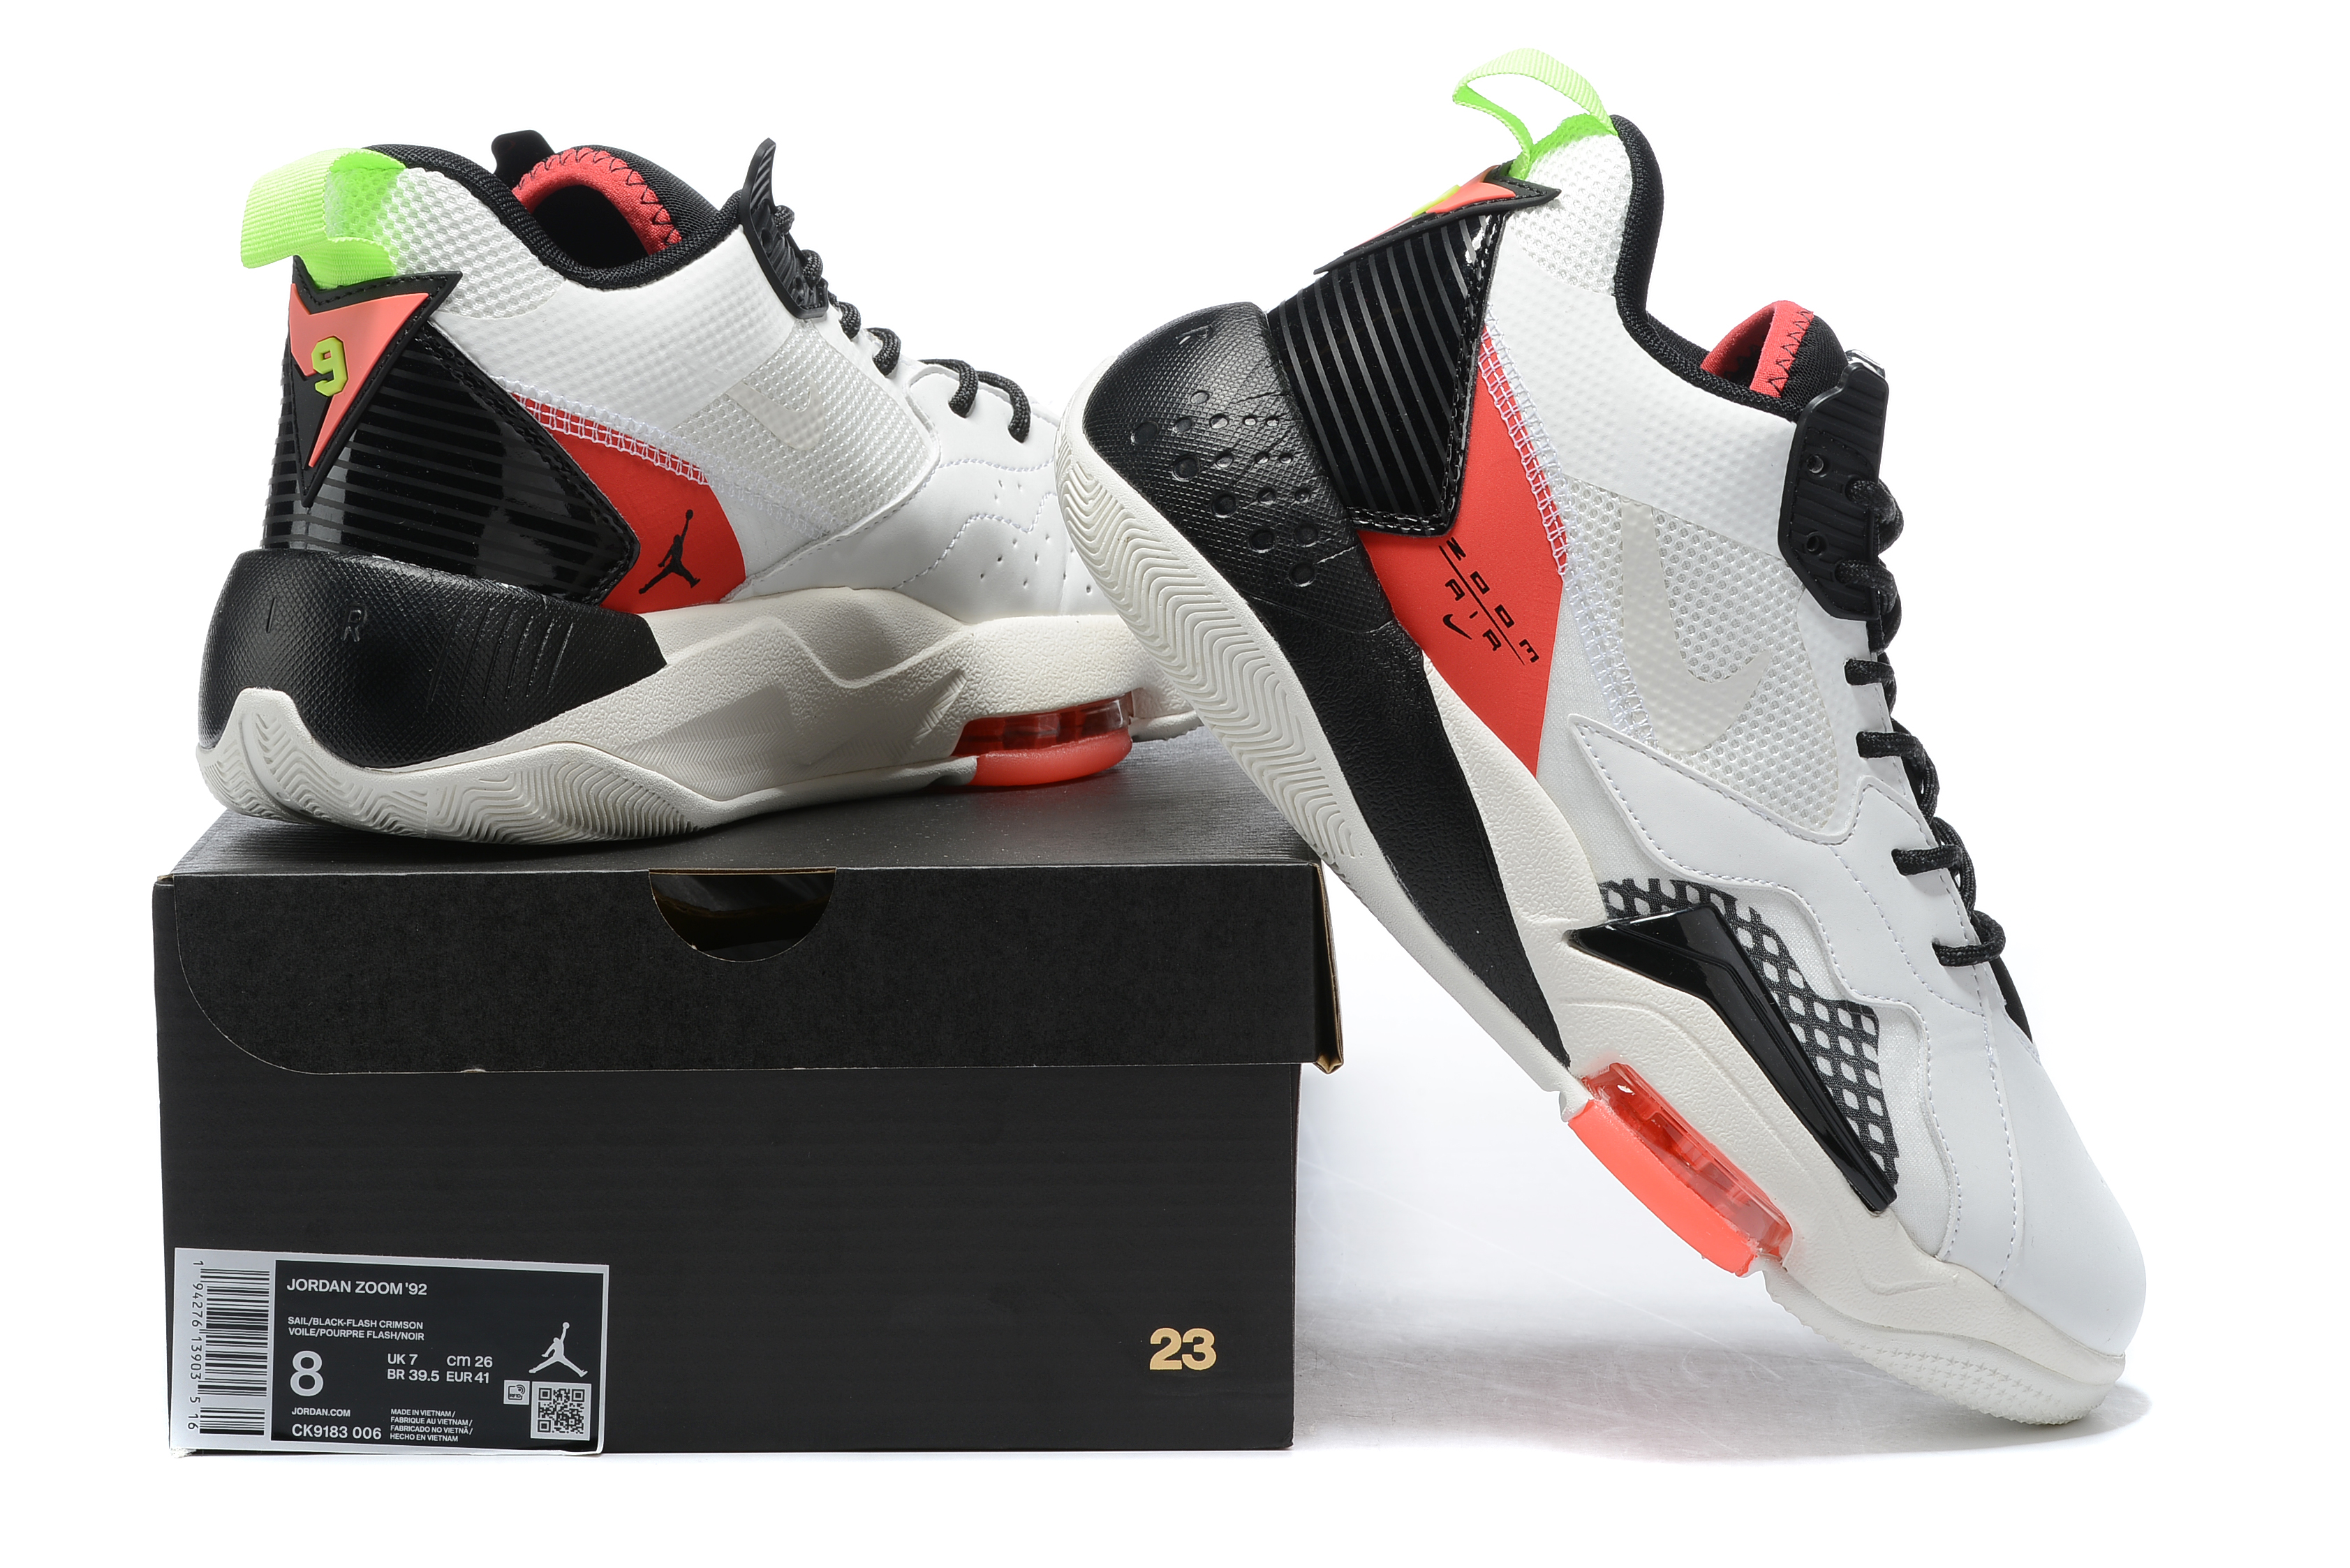 2020 Air Jordan Zoom 92 White Black Red Shoes